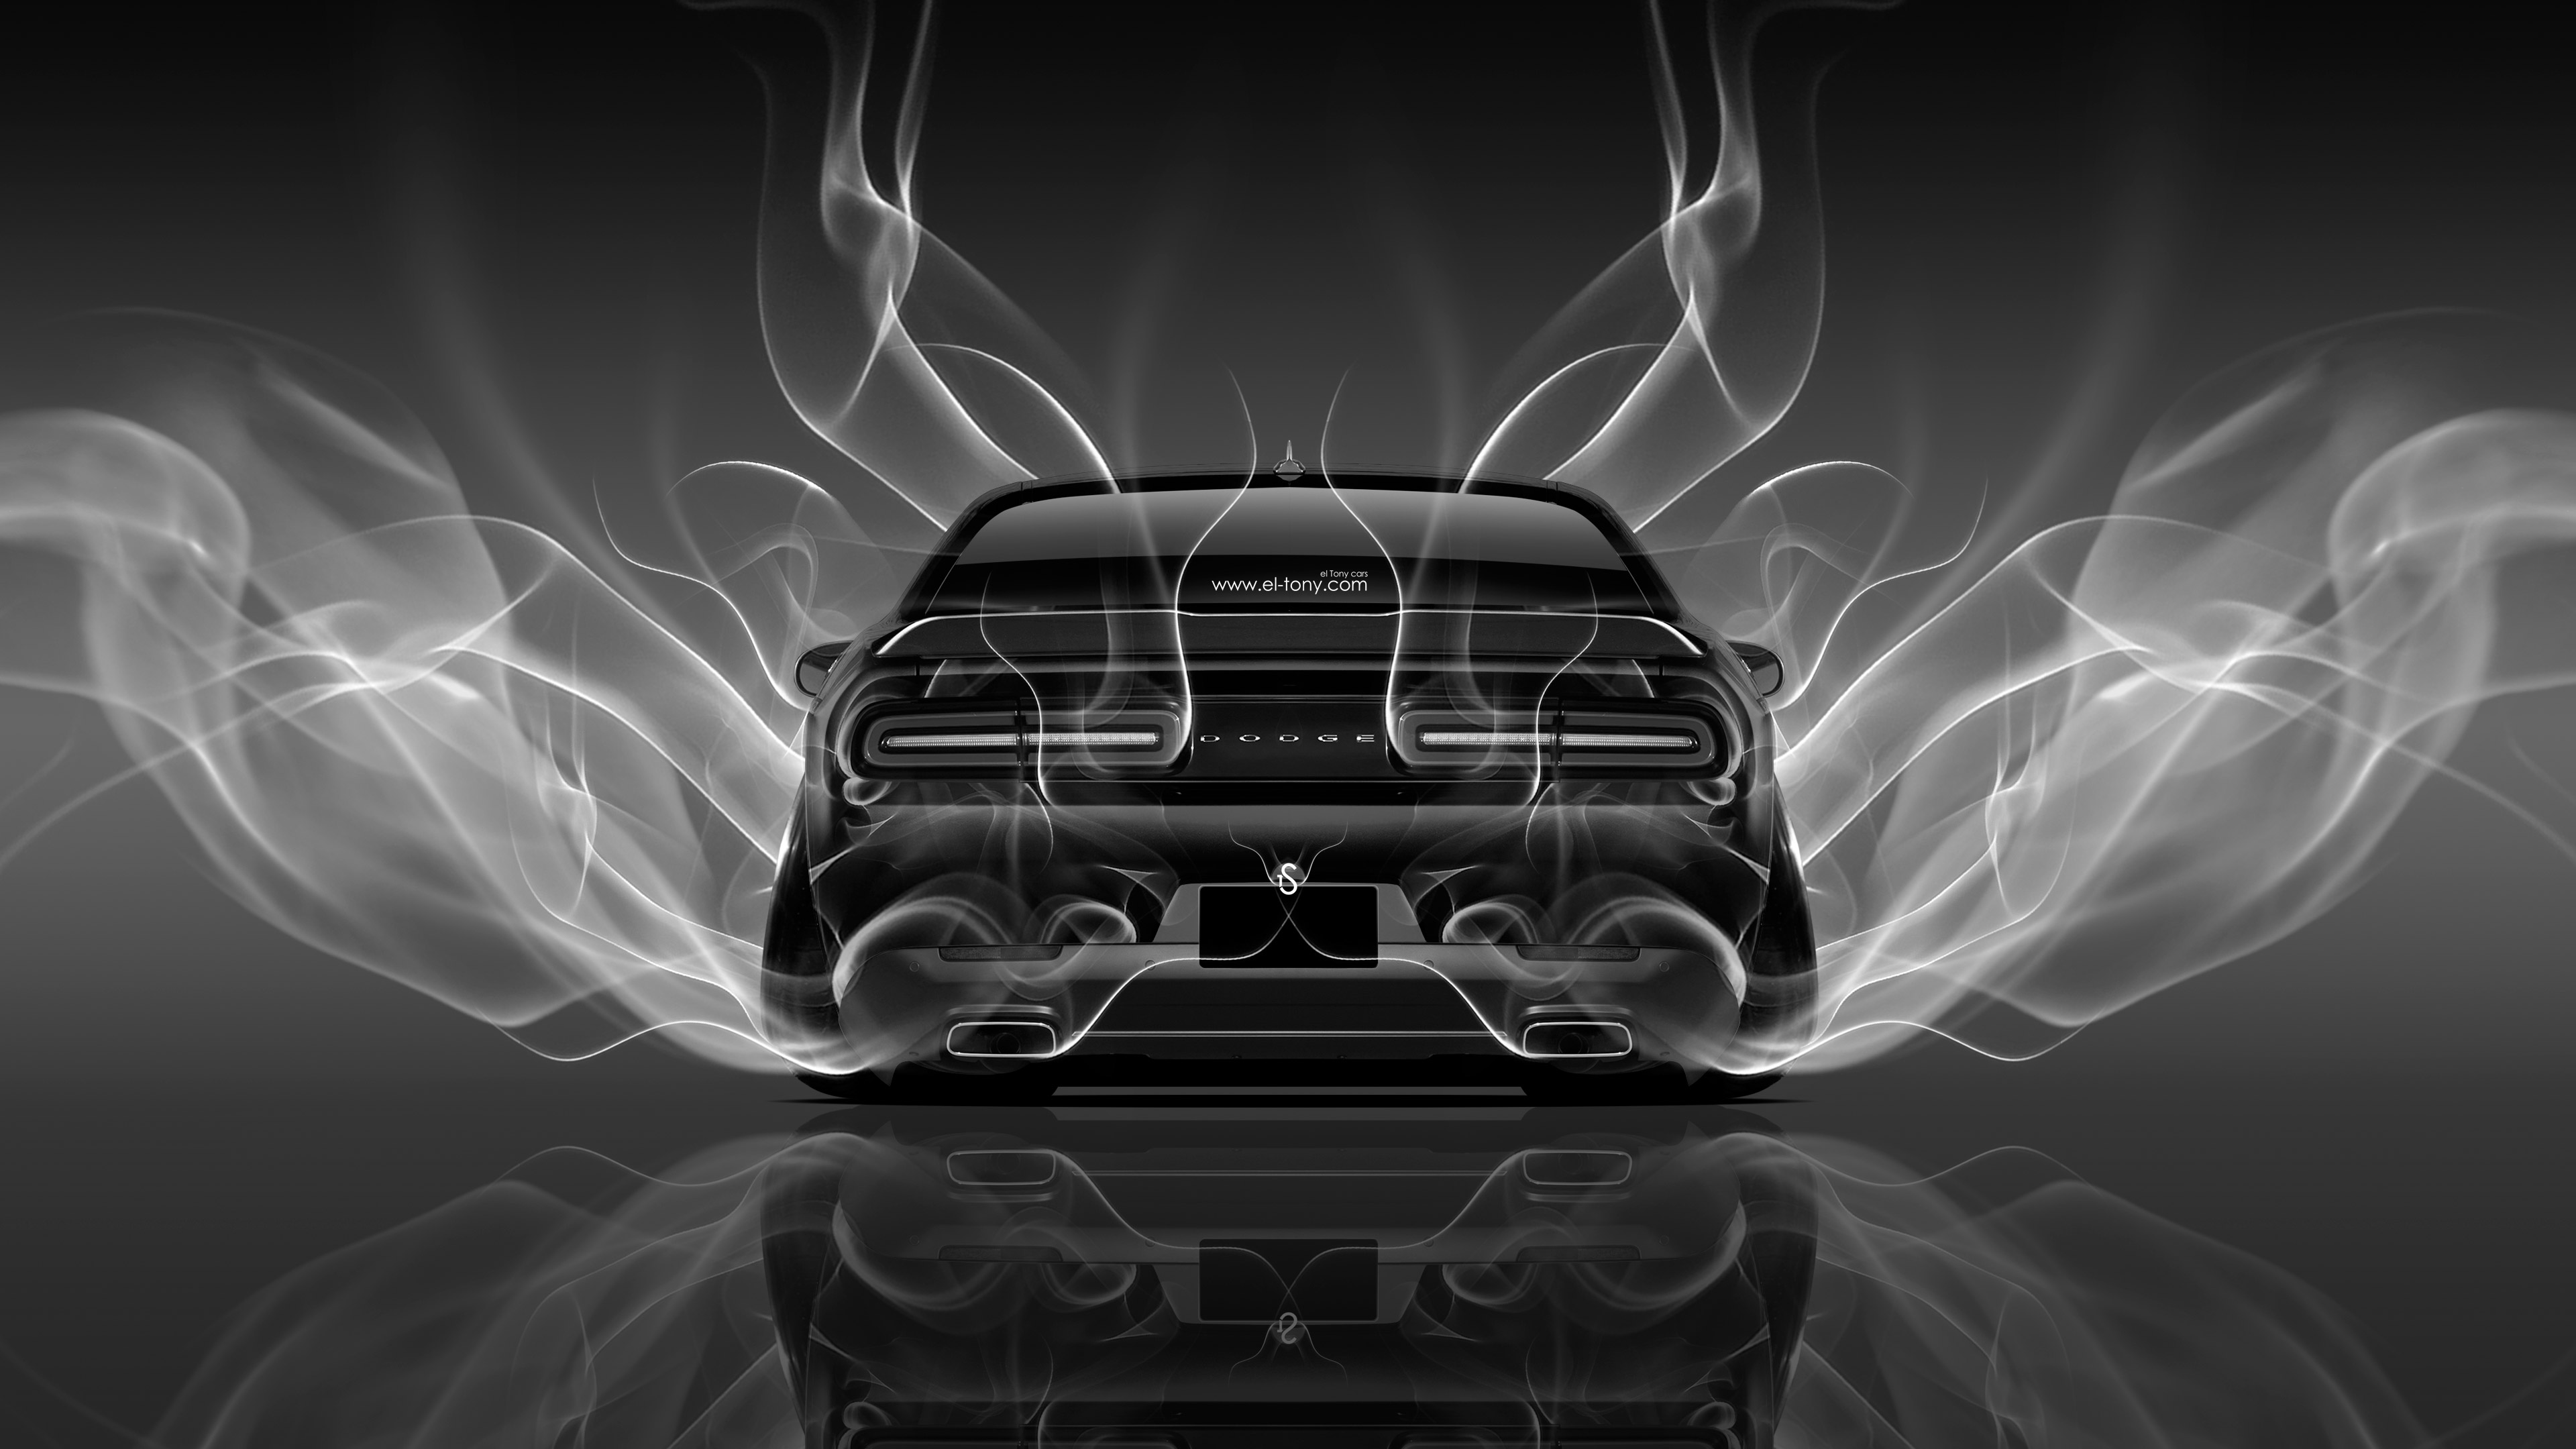 4k dodge challenger muscle back smoke car 2014 | el tony